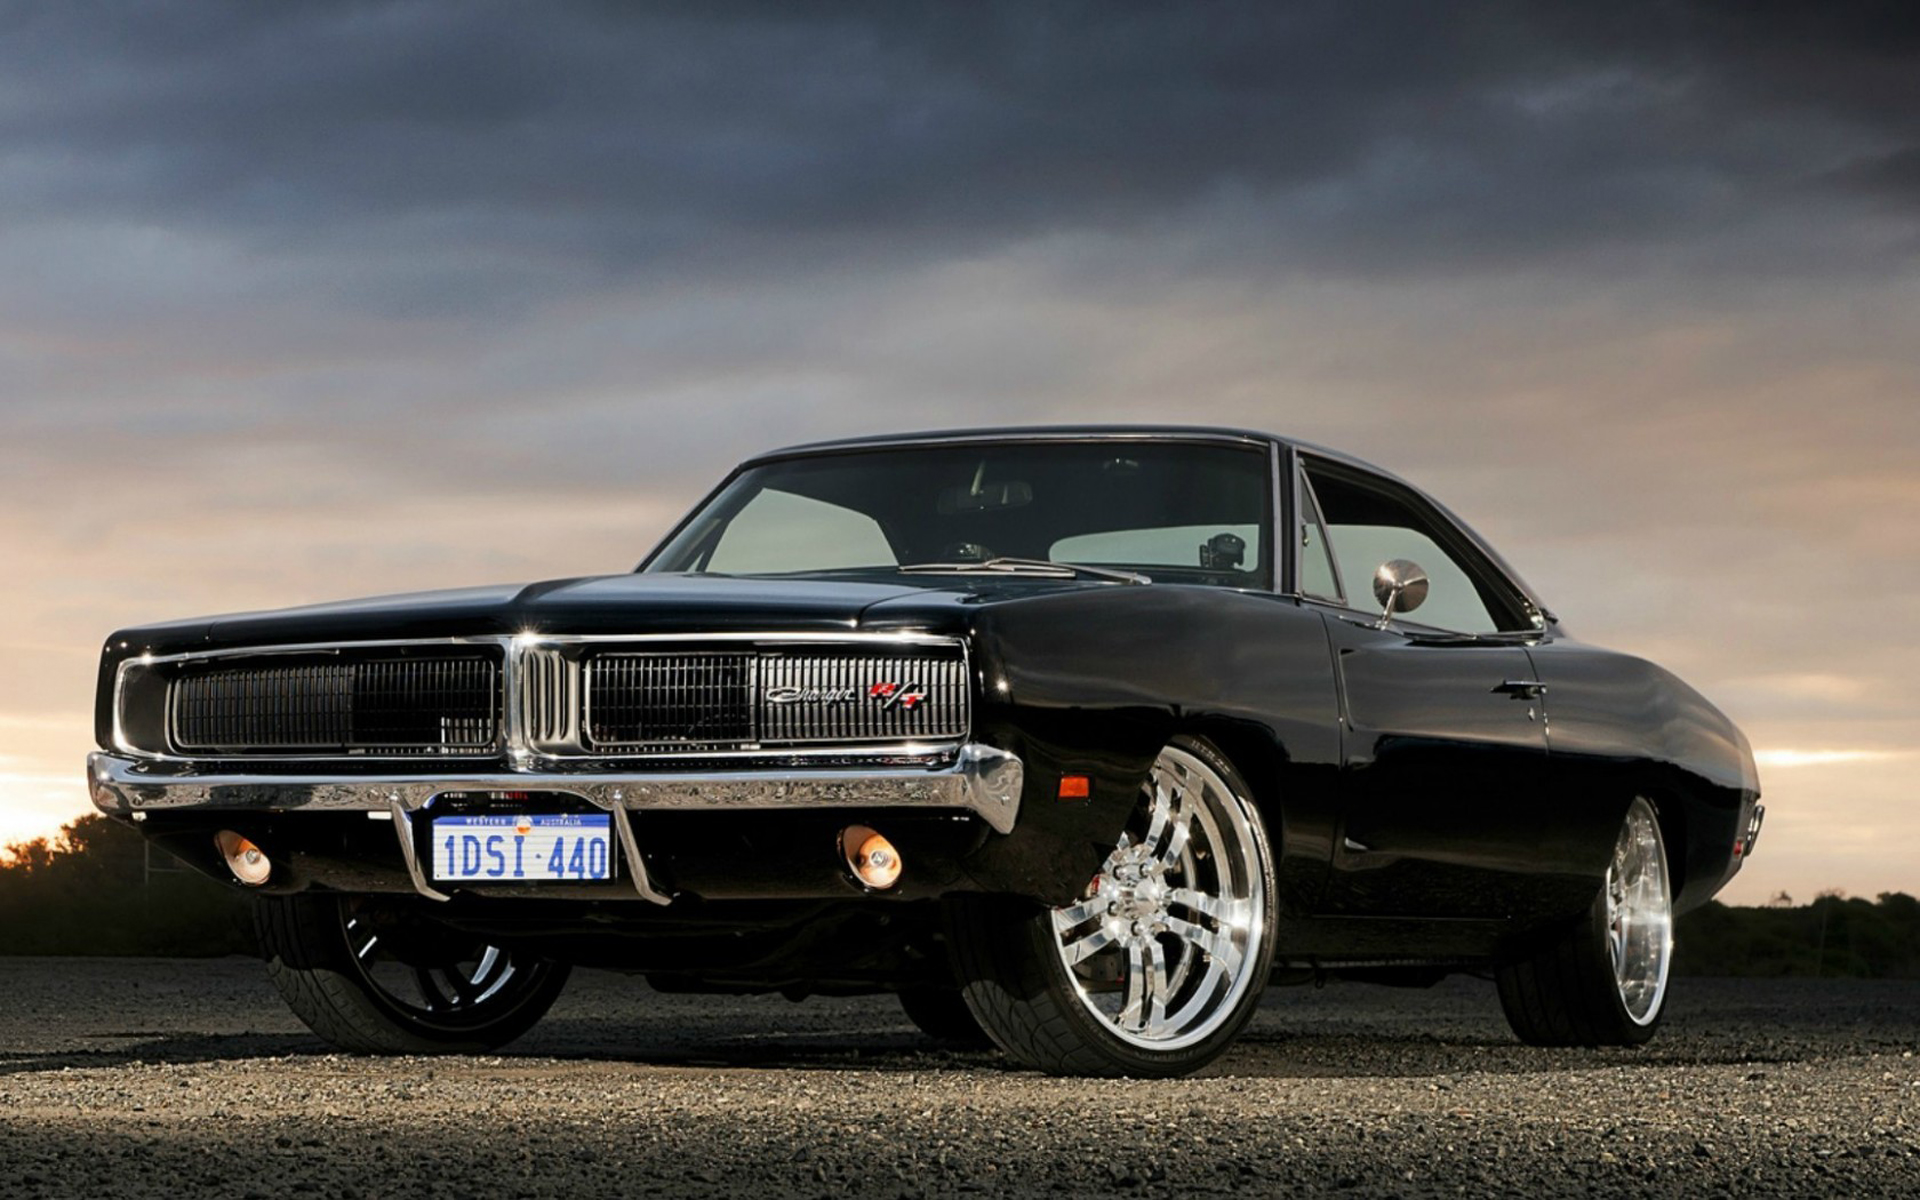 Free Download Dodge Charger Rt Hd Wallpaper Background Image